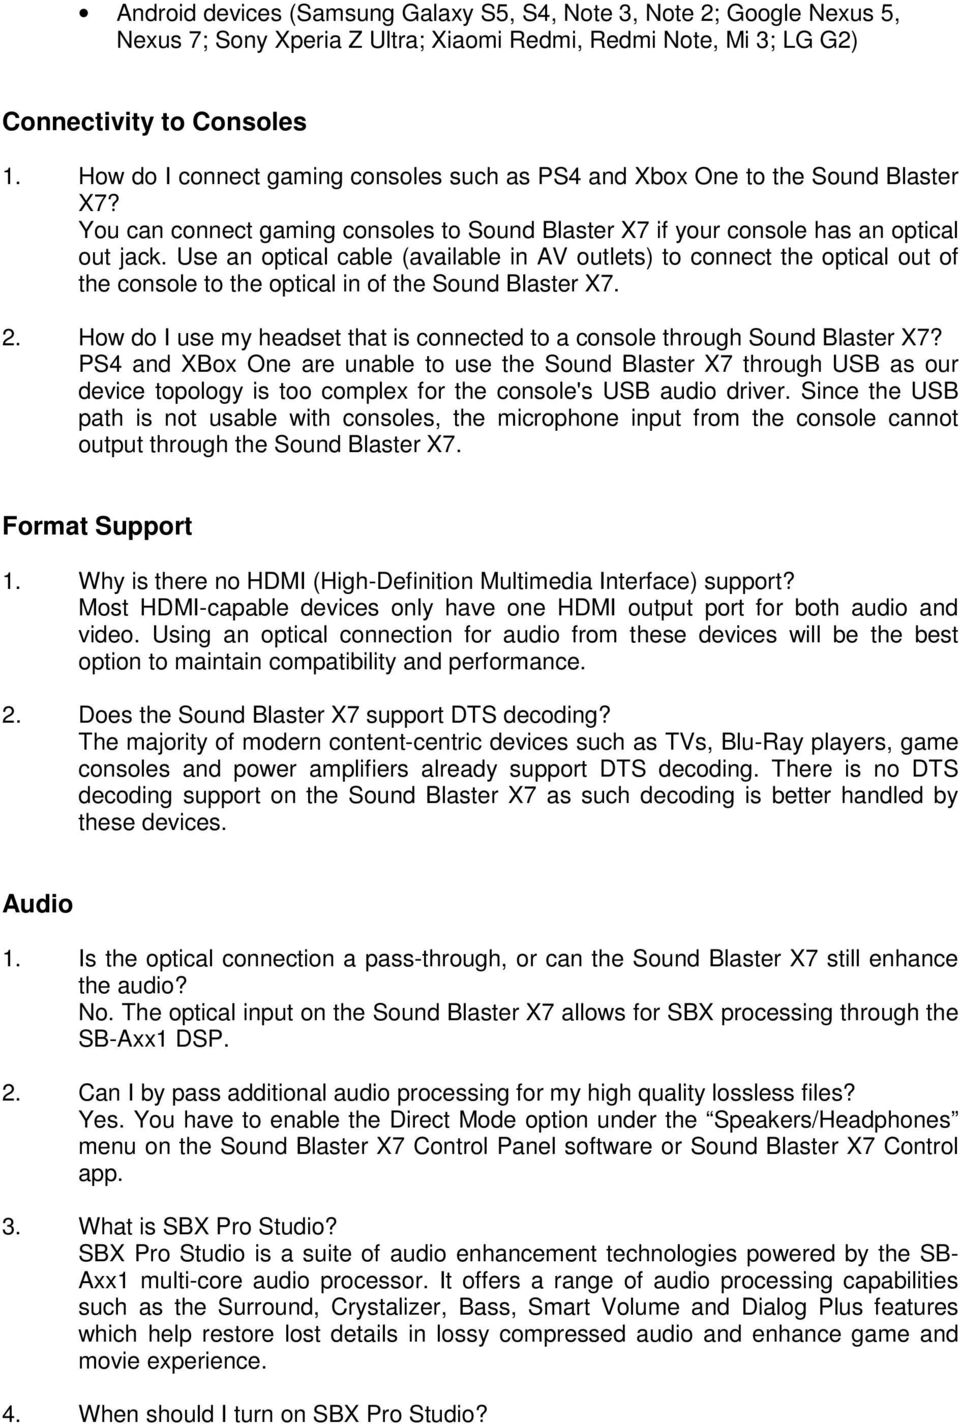 Frequently Asked Questions about the Sound Blaster X7 - PDF